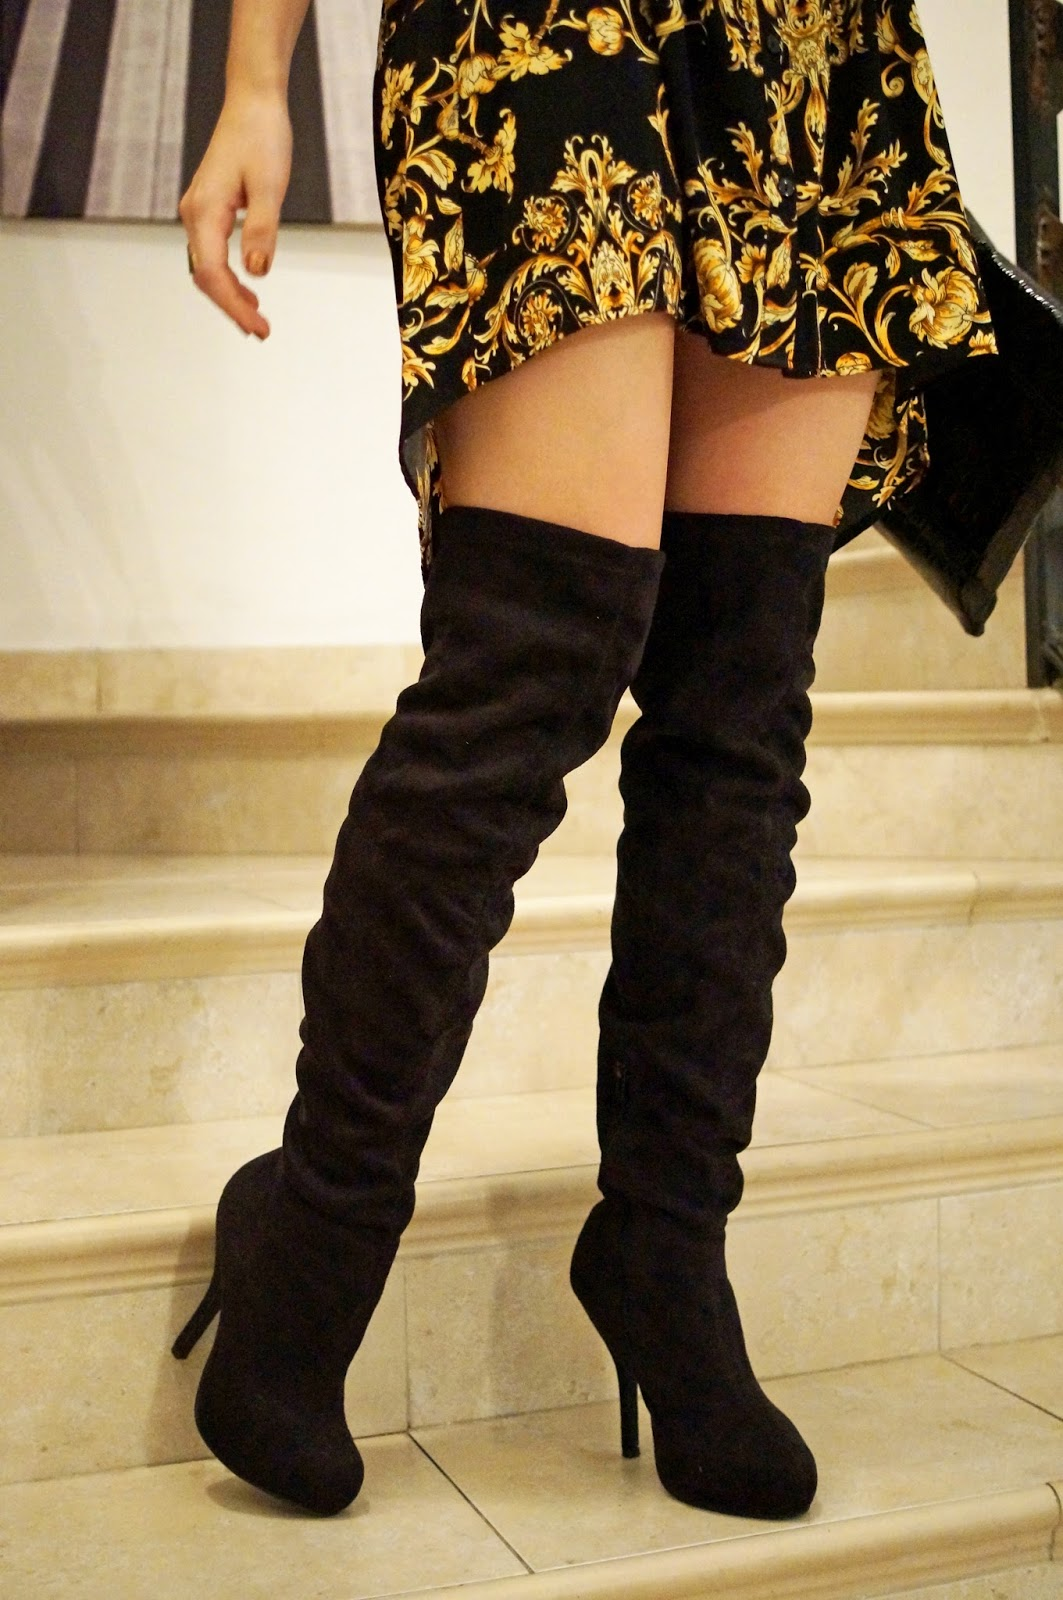 Chic and Affordable Thigh High Boots from Forever 21